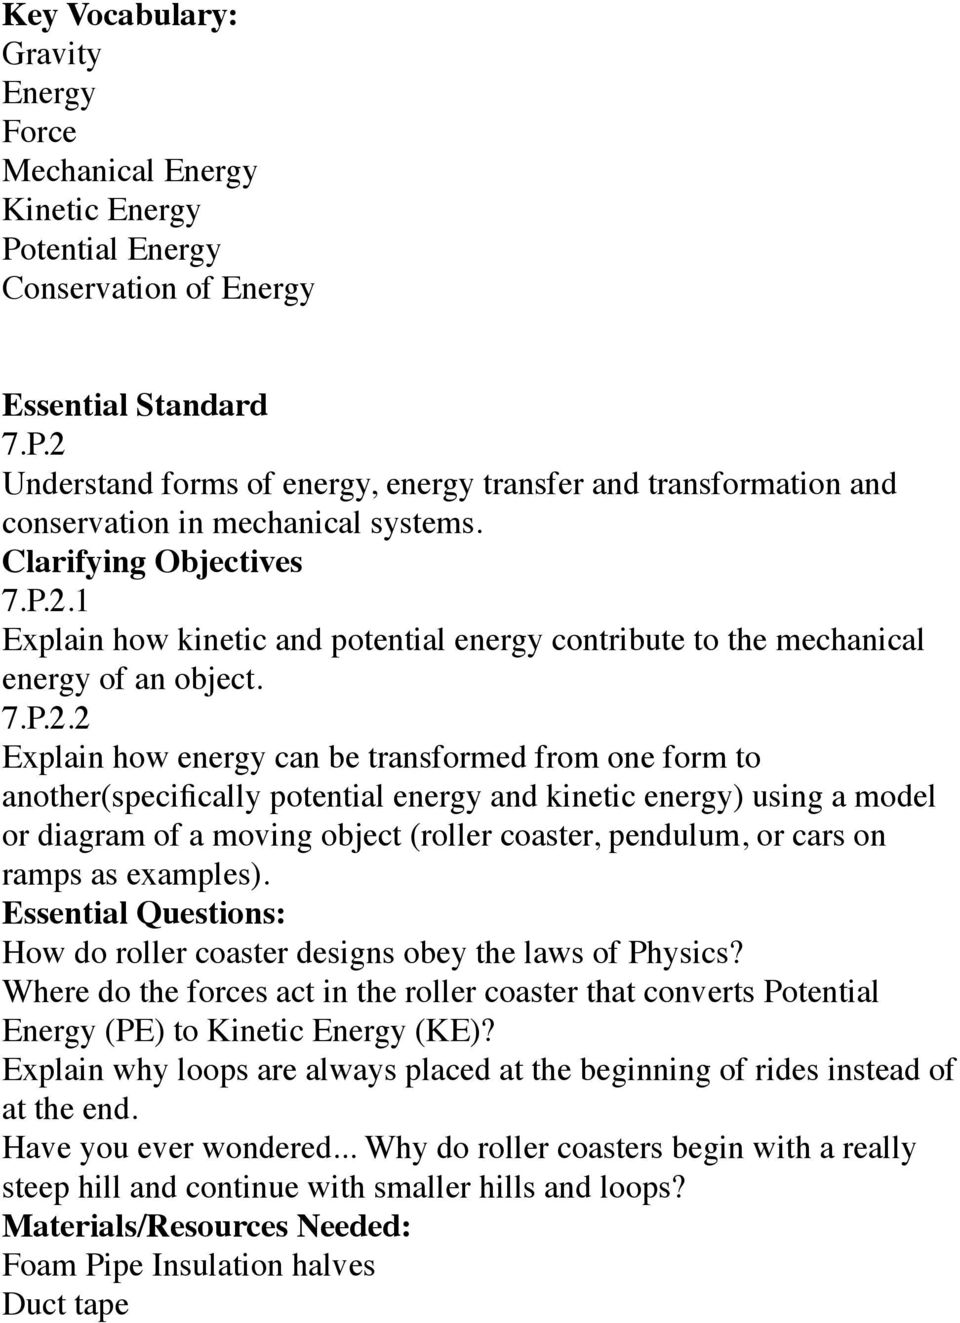 1 Explain how kinetic and potential energy contribute to the mechanical energy of an object. 7.P.2.